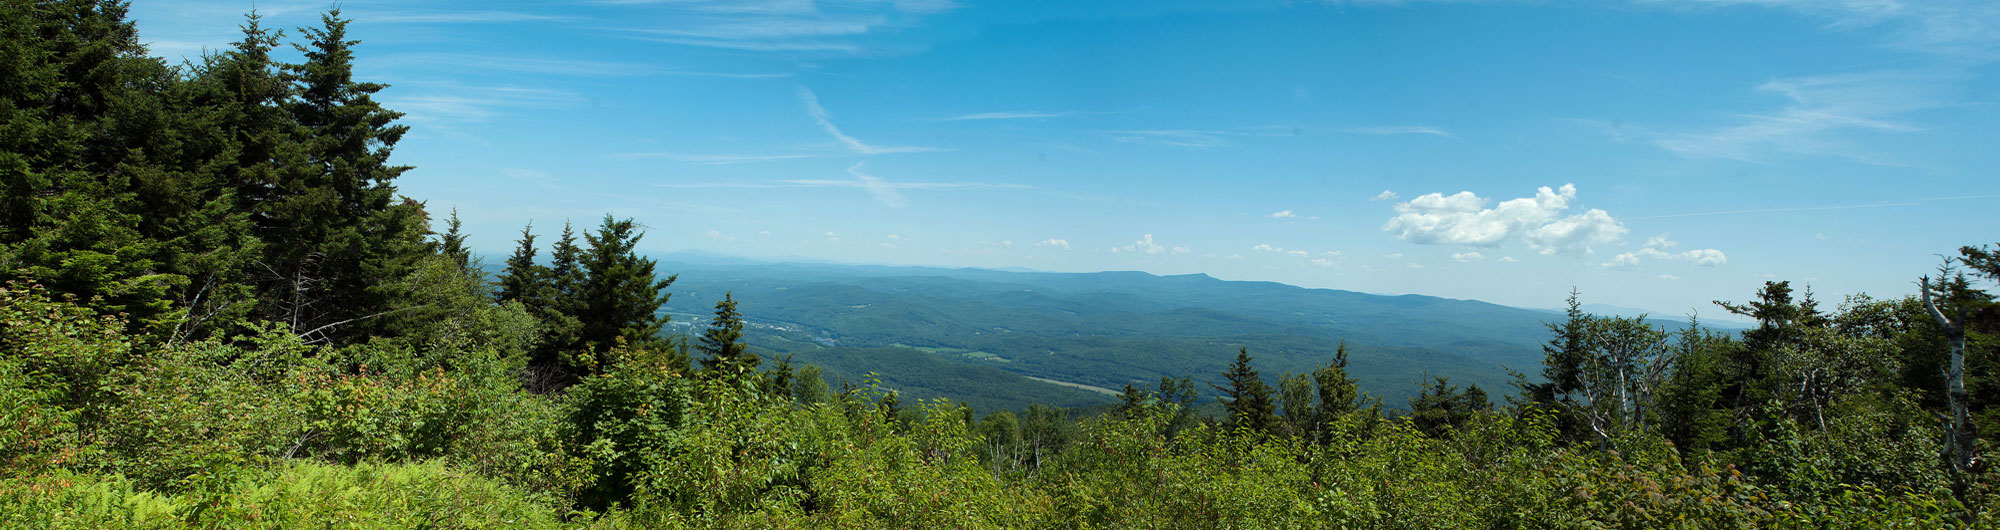 Mt. Ascutney State Park 4